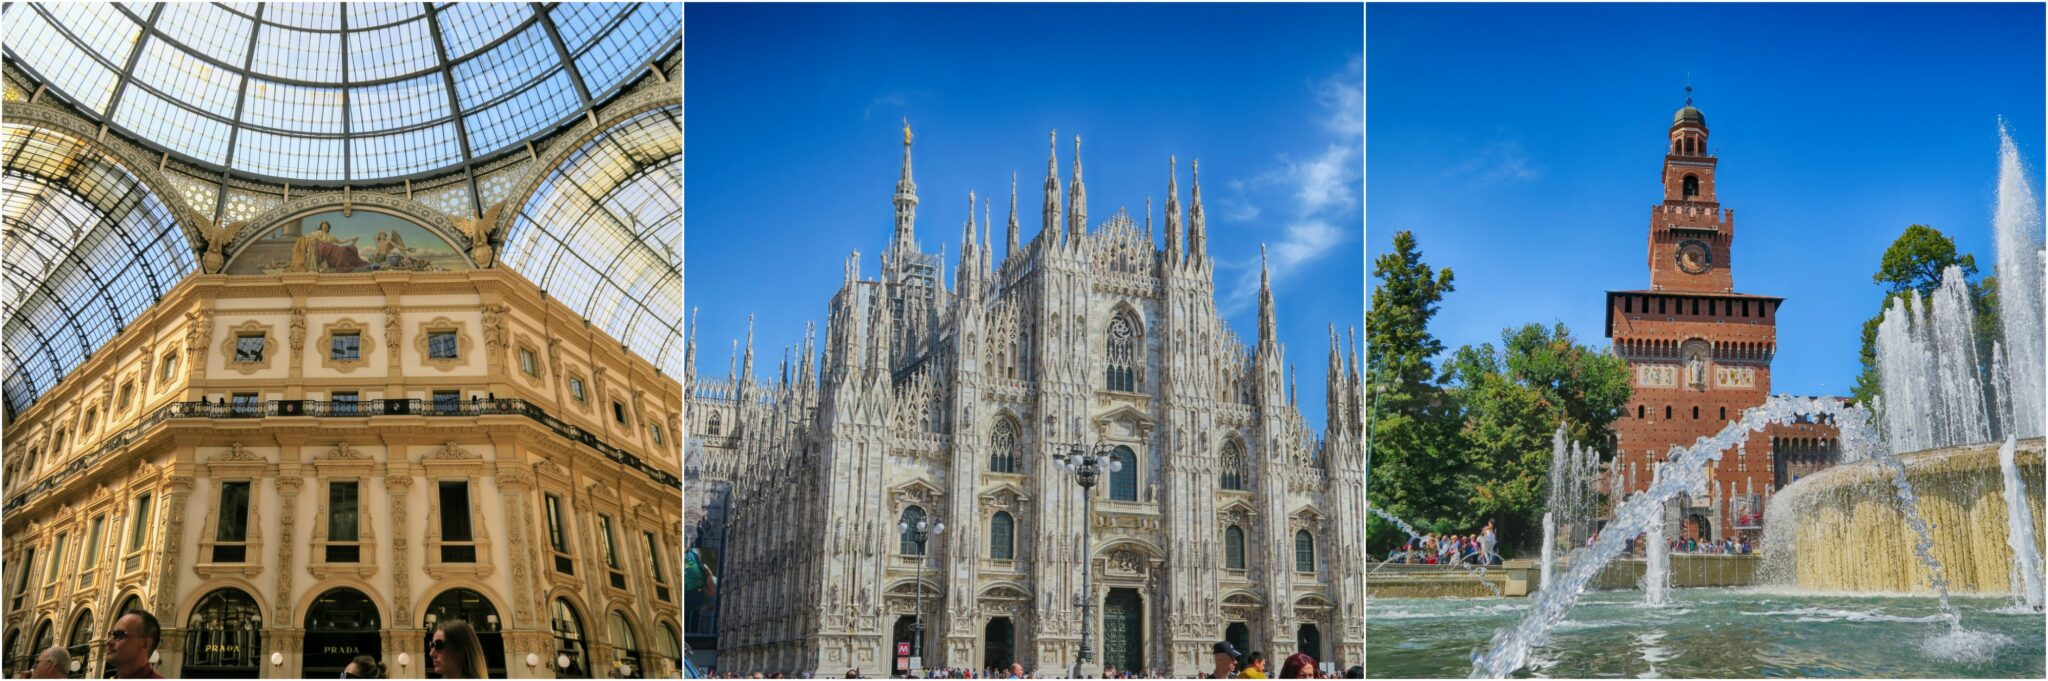 Things To Do In Milan What Italy Sightseeing Attractions